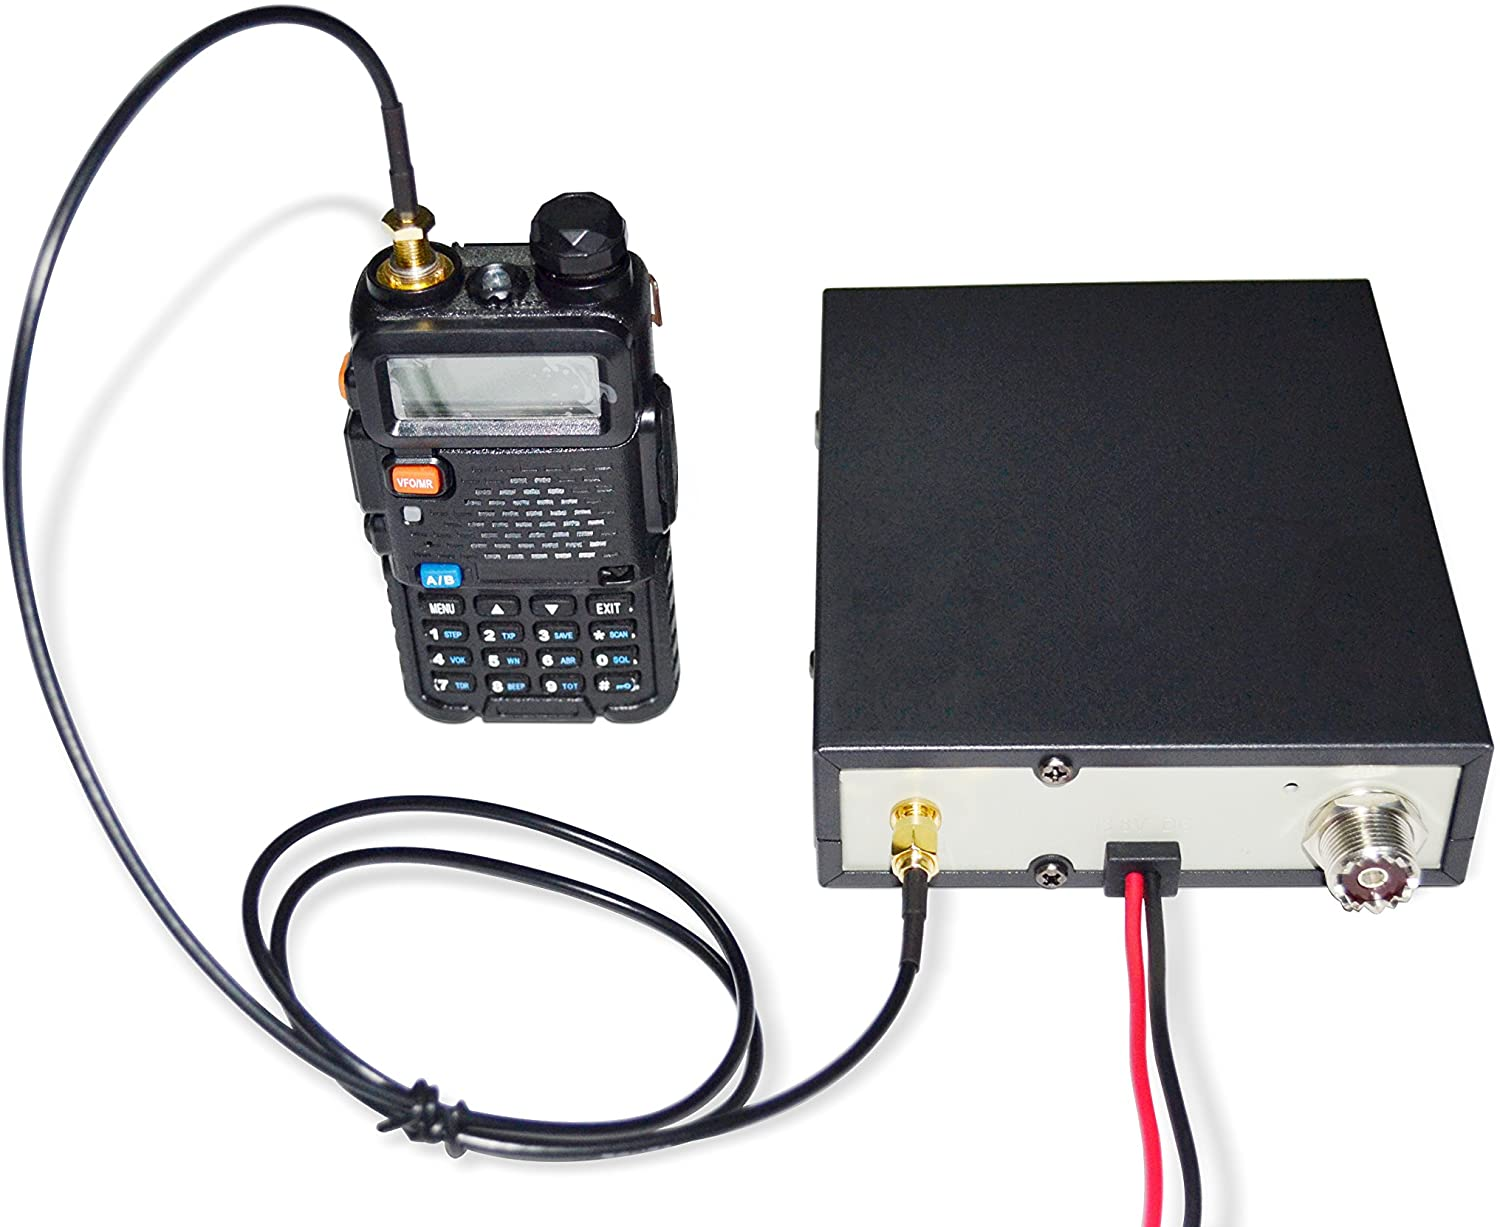 ICOM Supports DMR Yaesu 400-480MHz Motorola 20-40W Output Compatible with All Handheld Radios: BTECH BTECH AMP-U25D Amplifier 2-6W Input Kenwood BaoFeng Analog and Digital Modes UHF